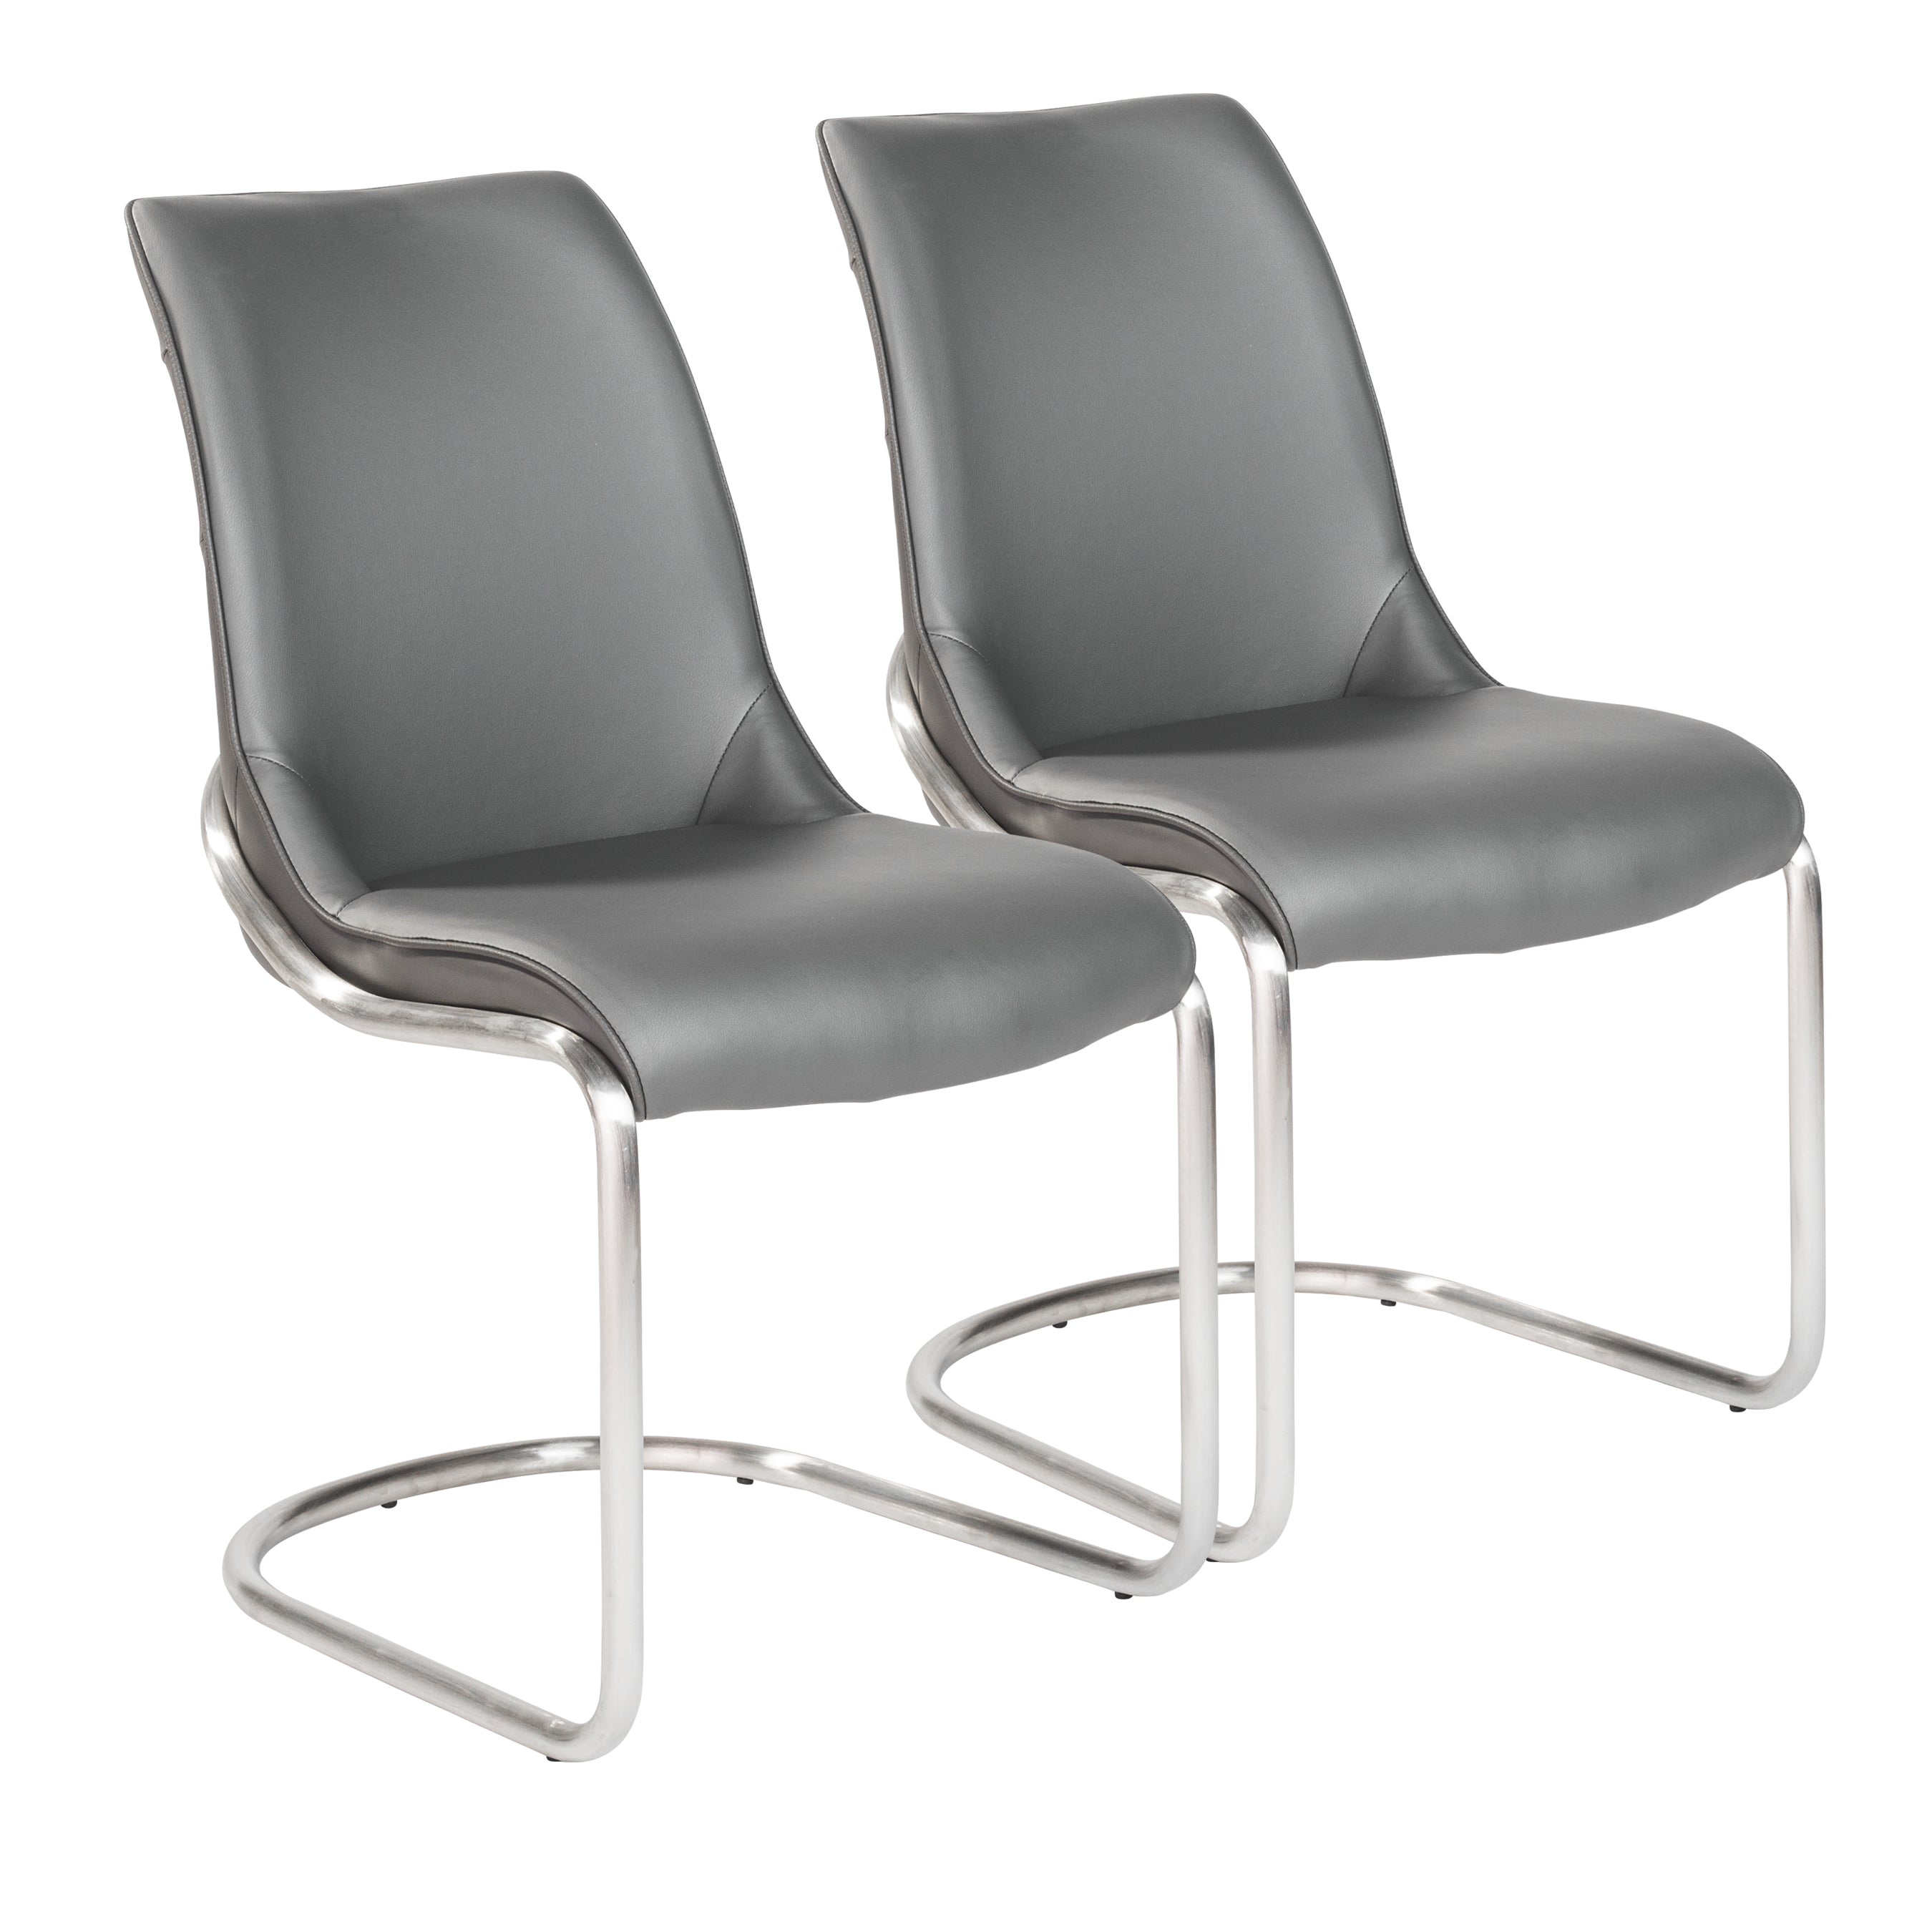 Versatile Light Gray Leatherette Guest or Conference Chairs (Set of 2)